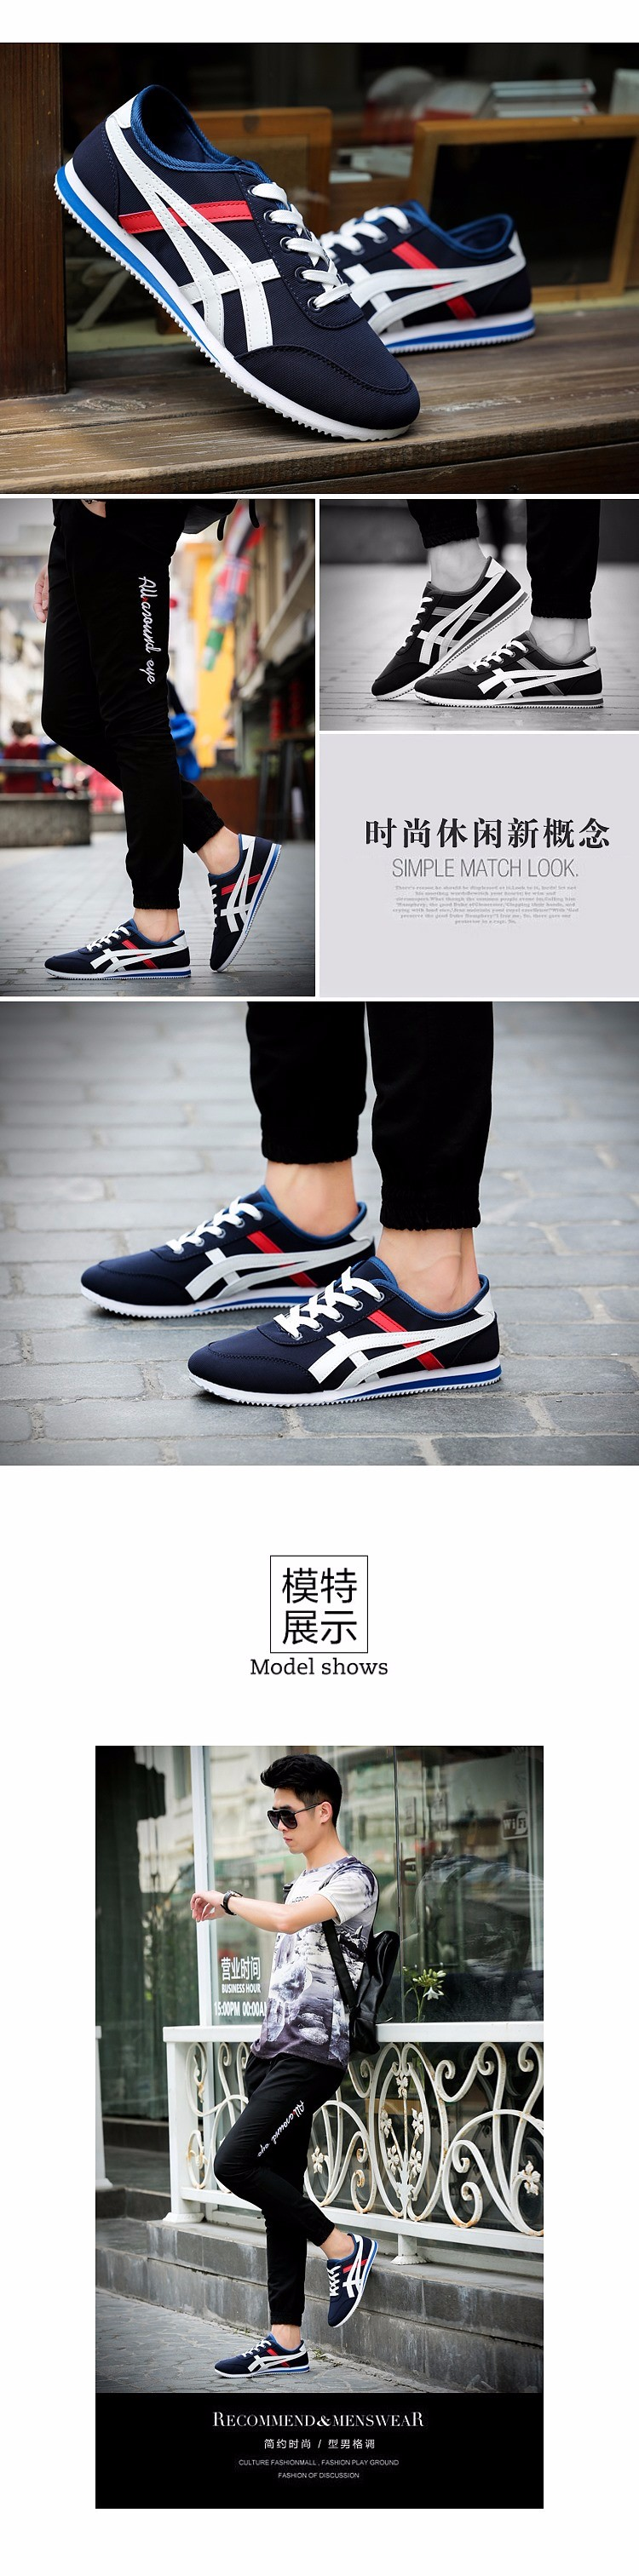 zapatos mujer 2016 Hot AIR British flat breathable MEN shoes Forrest Gump shoes MAX SIZE39-44 zapatillas deportivas hombre